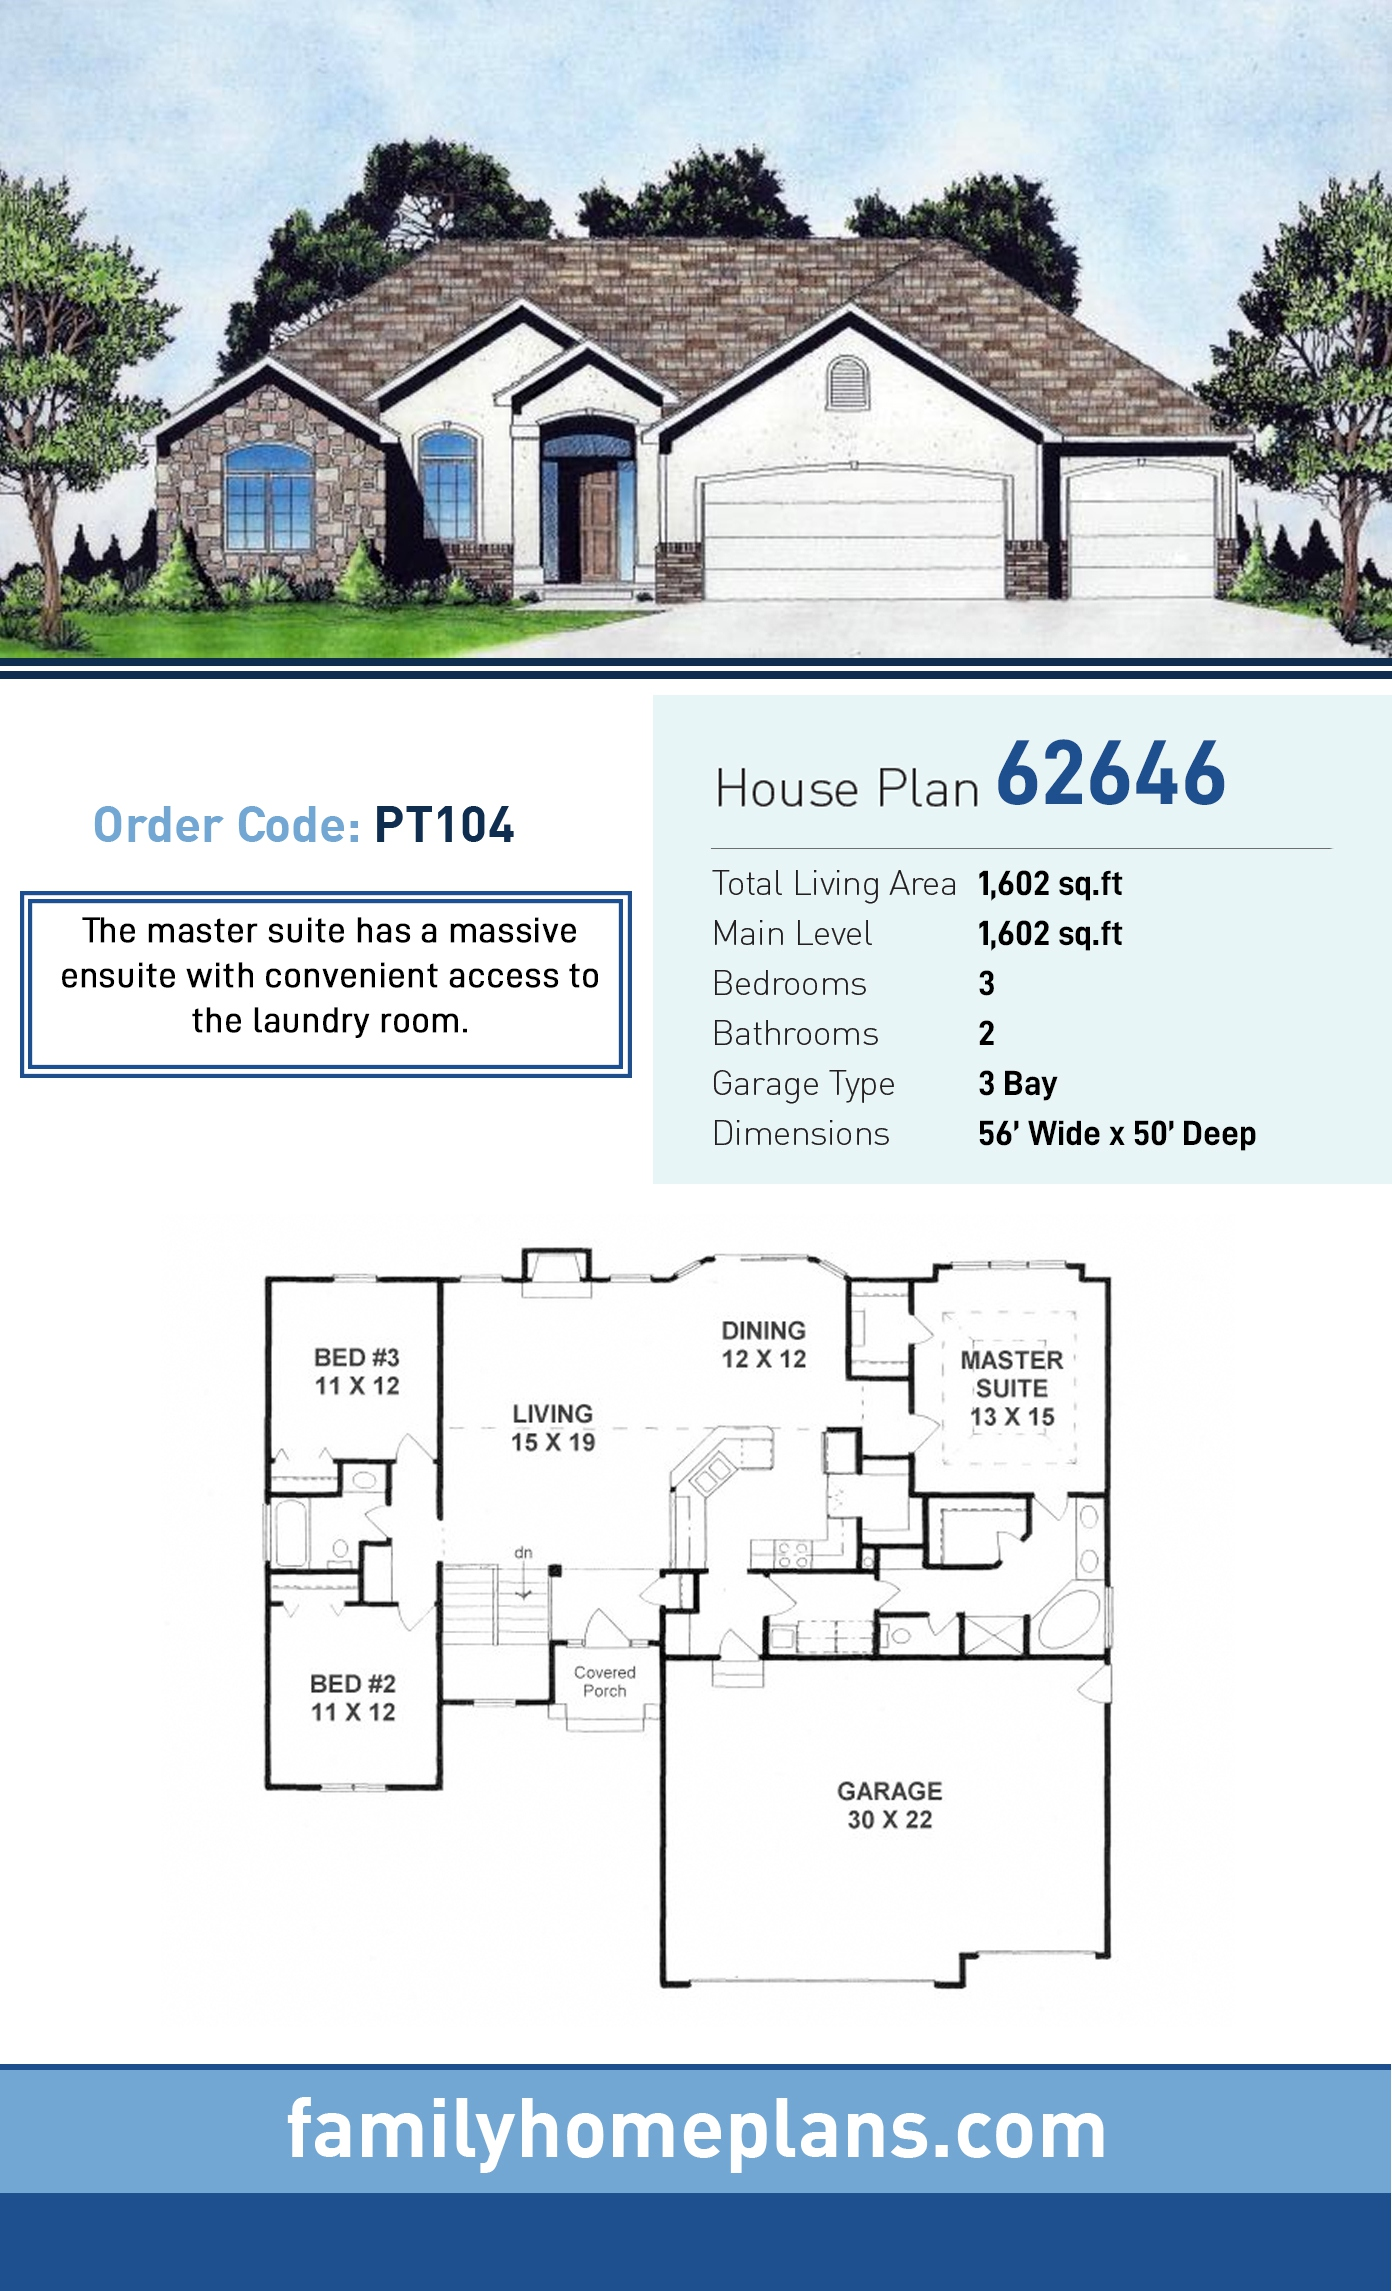 Traditional House Plan 62646 with 3 Beds, 2 Baths, 3 Car Garage